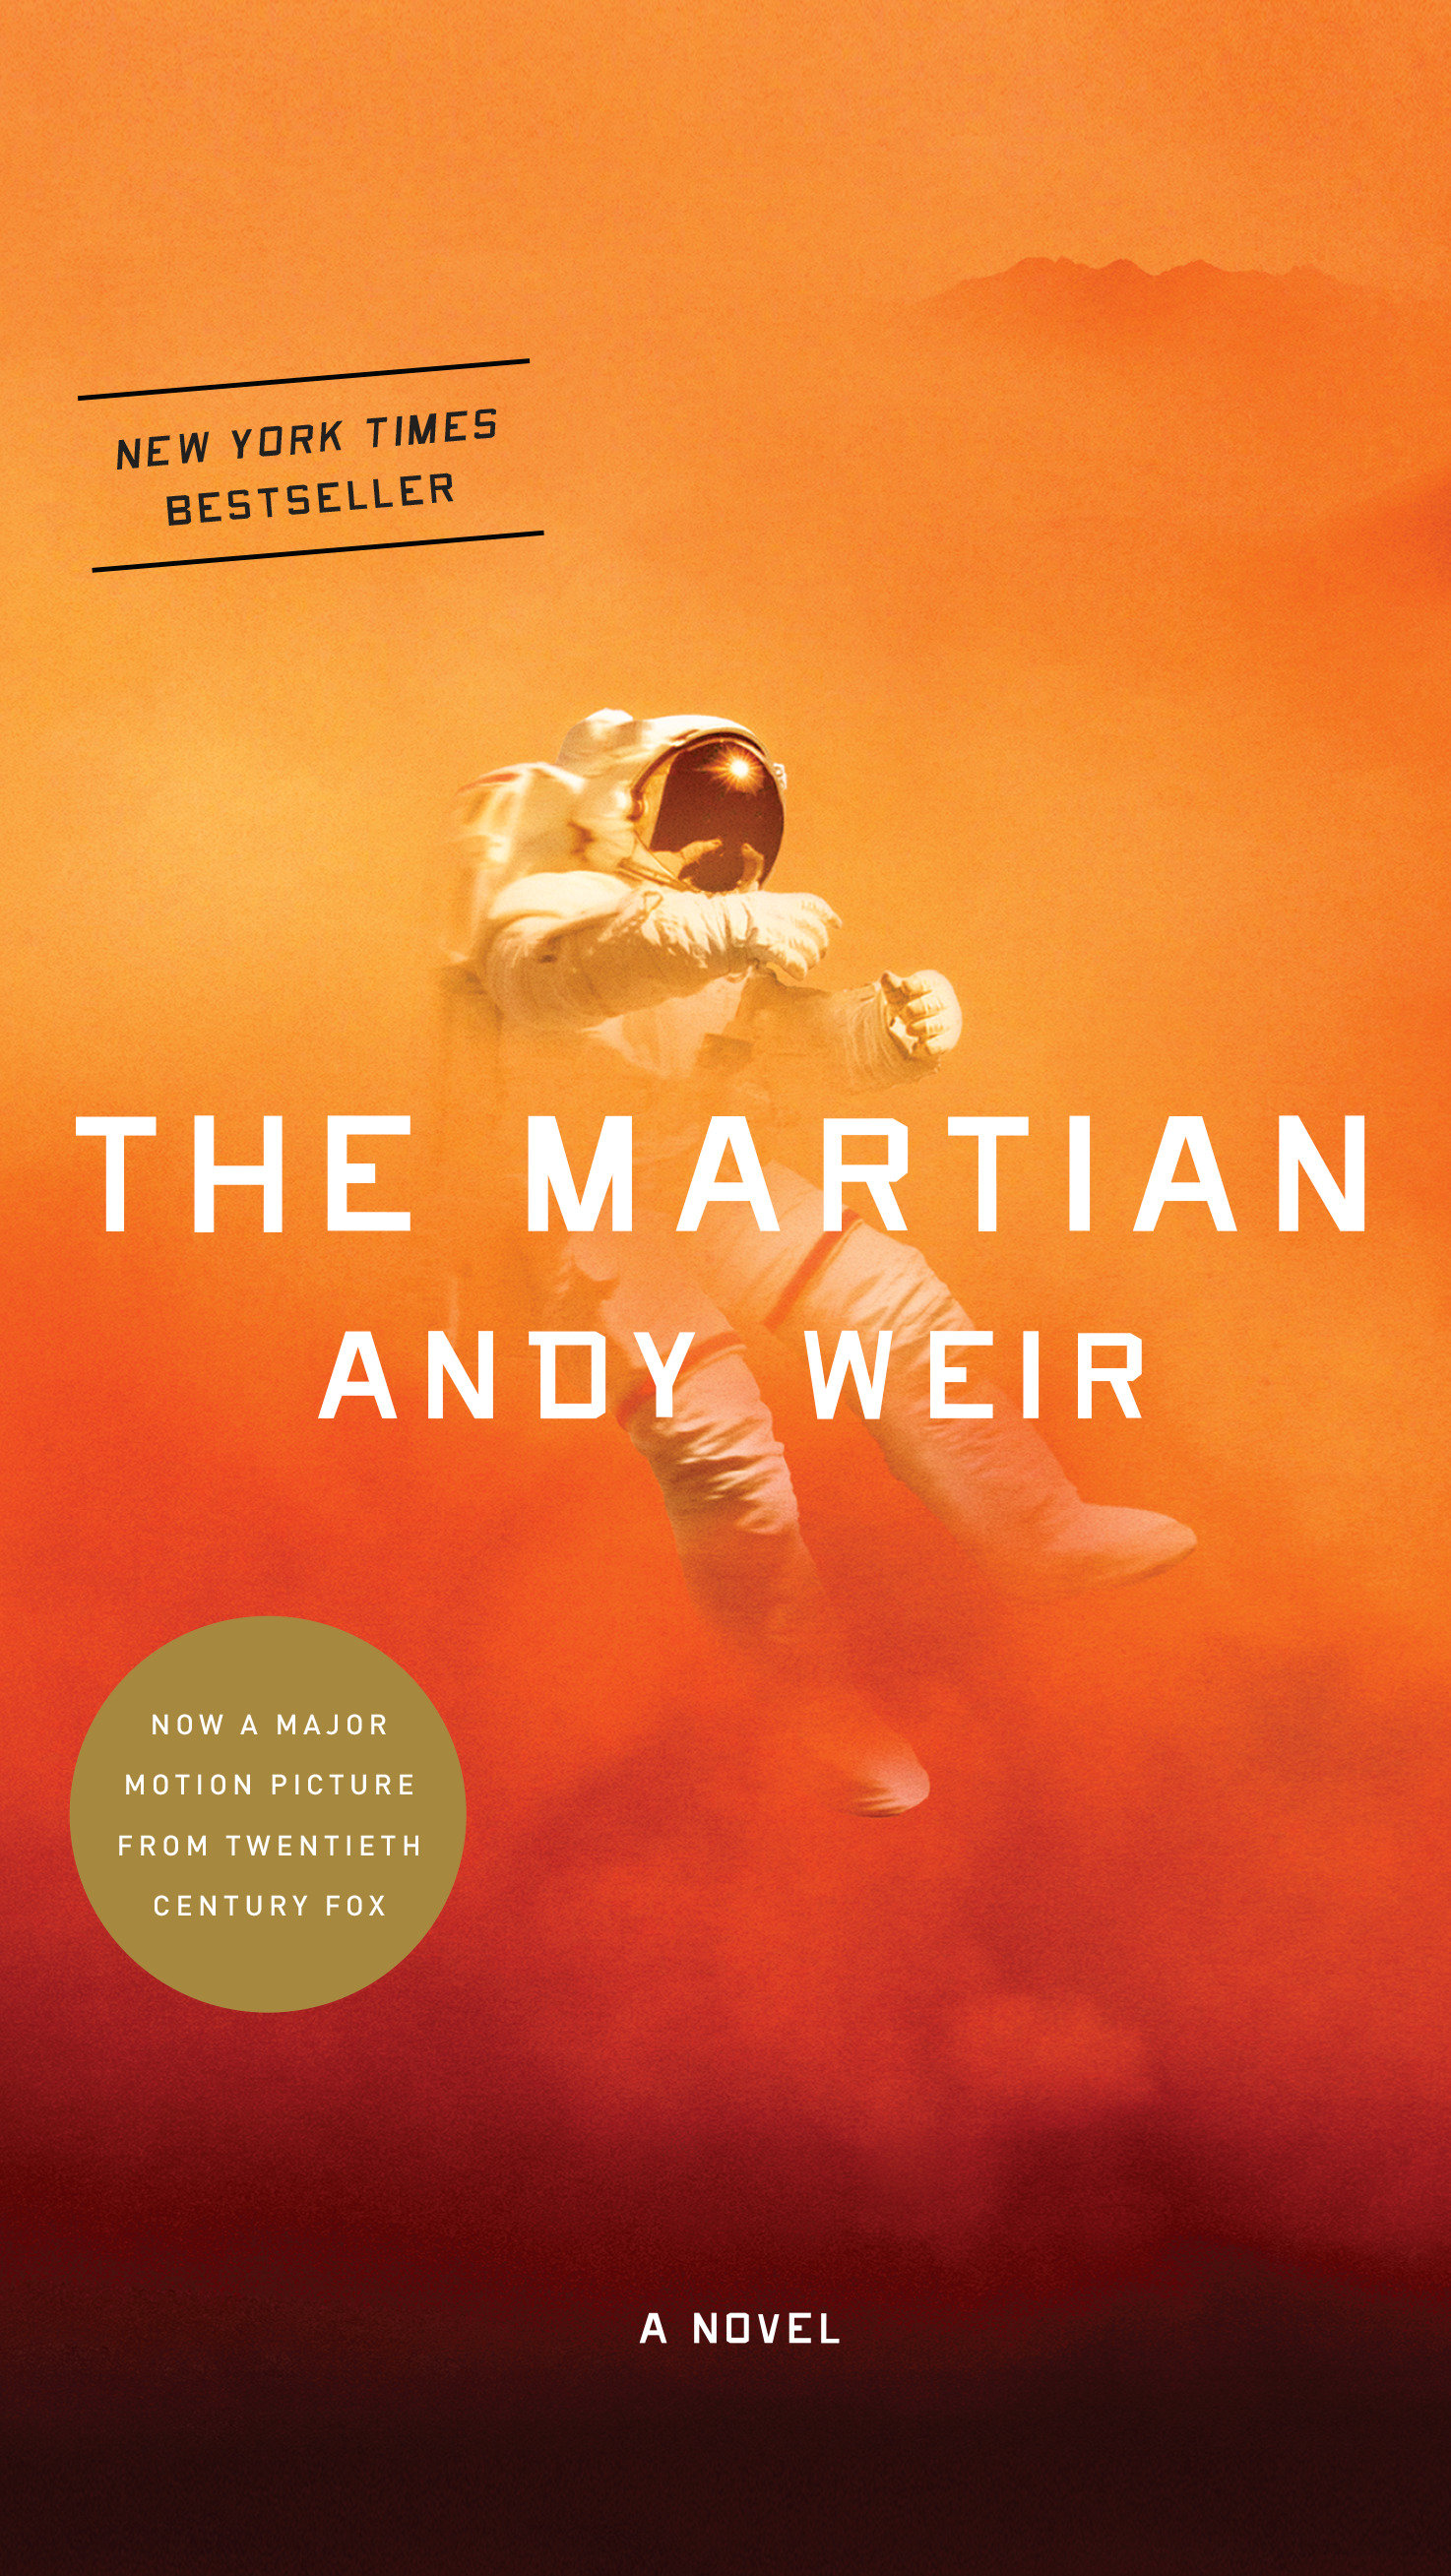 The Martian [electronic resource] : A Novel